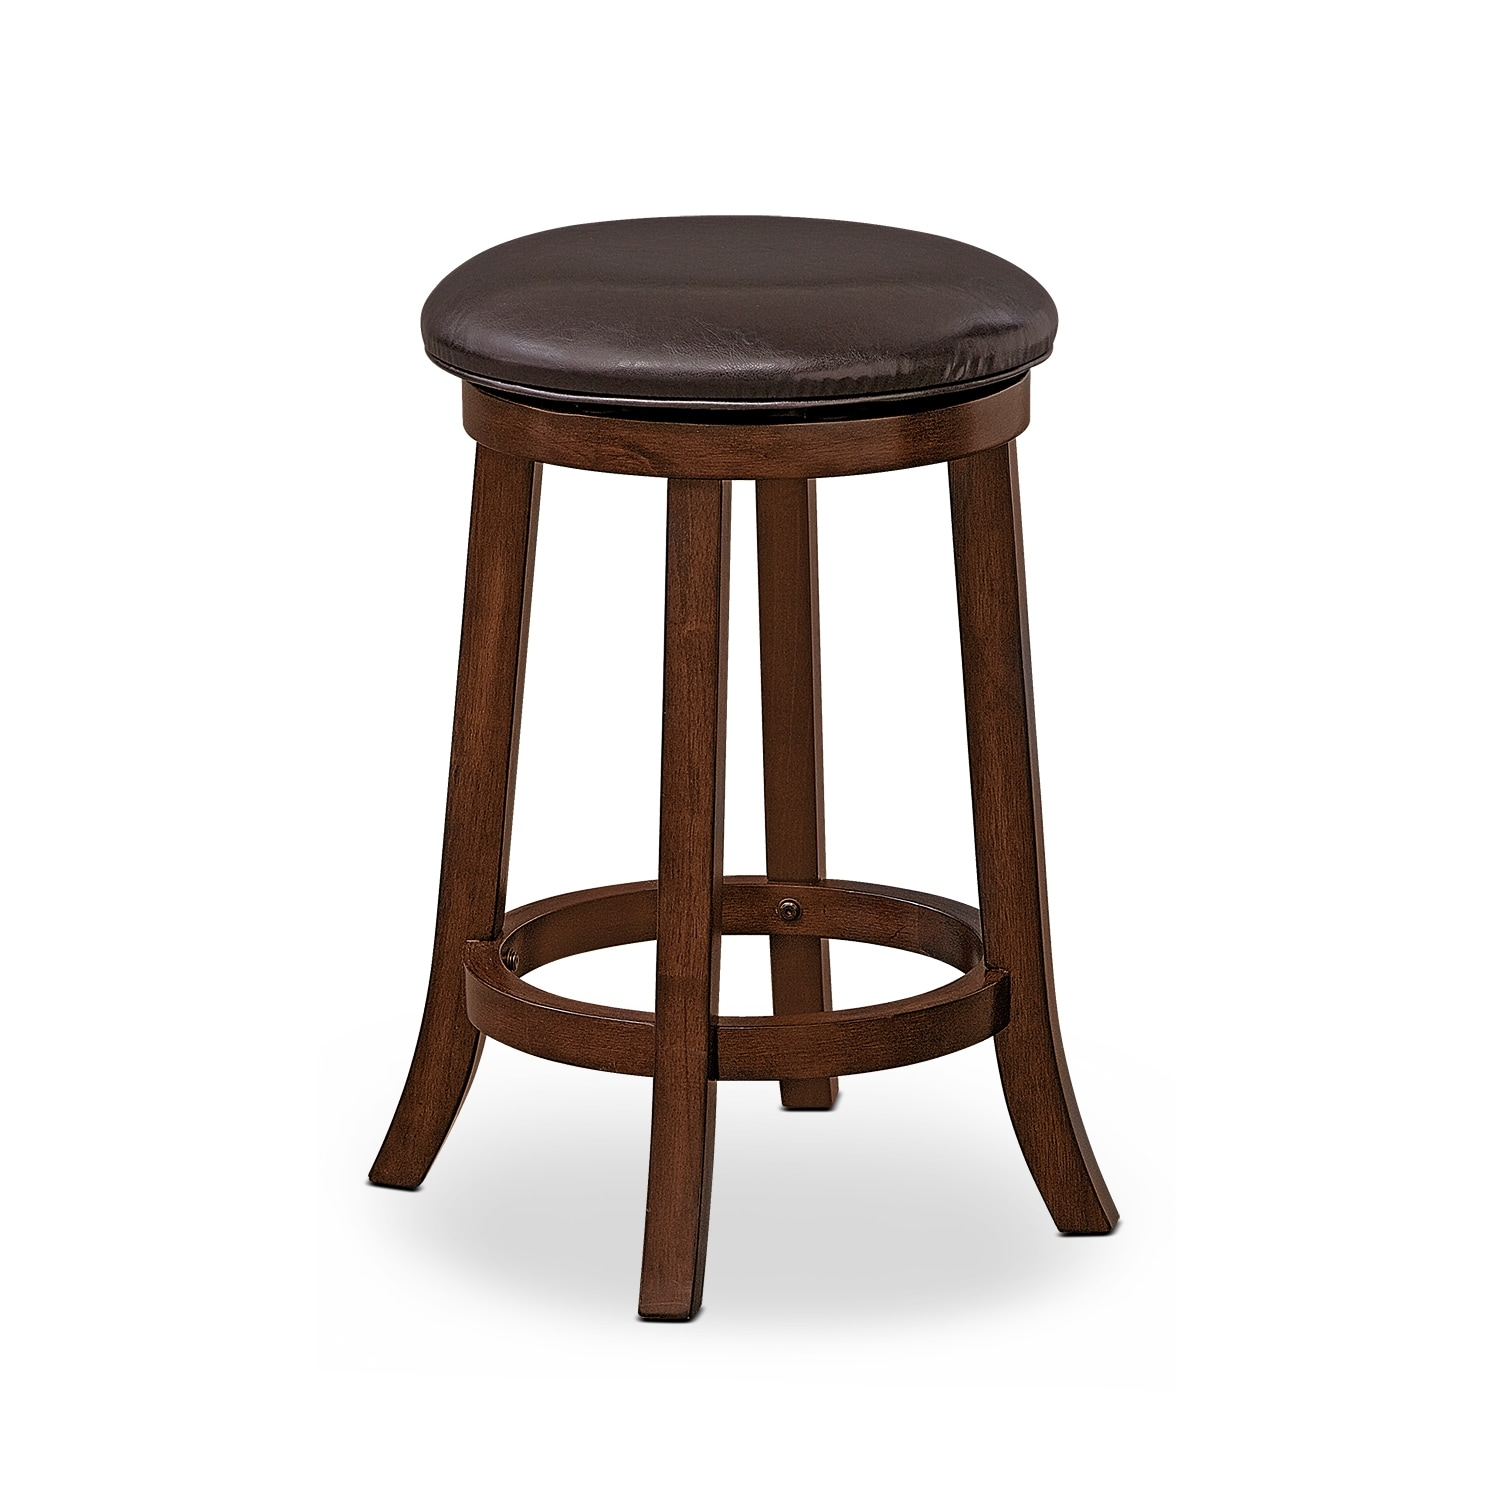 Dining Room Furniture - Tinker Counter-Height Stool - Burnished Cherry